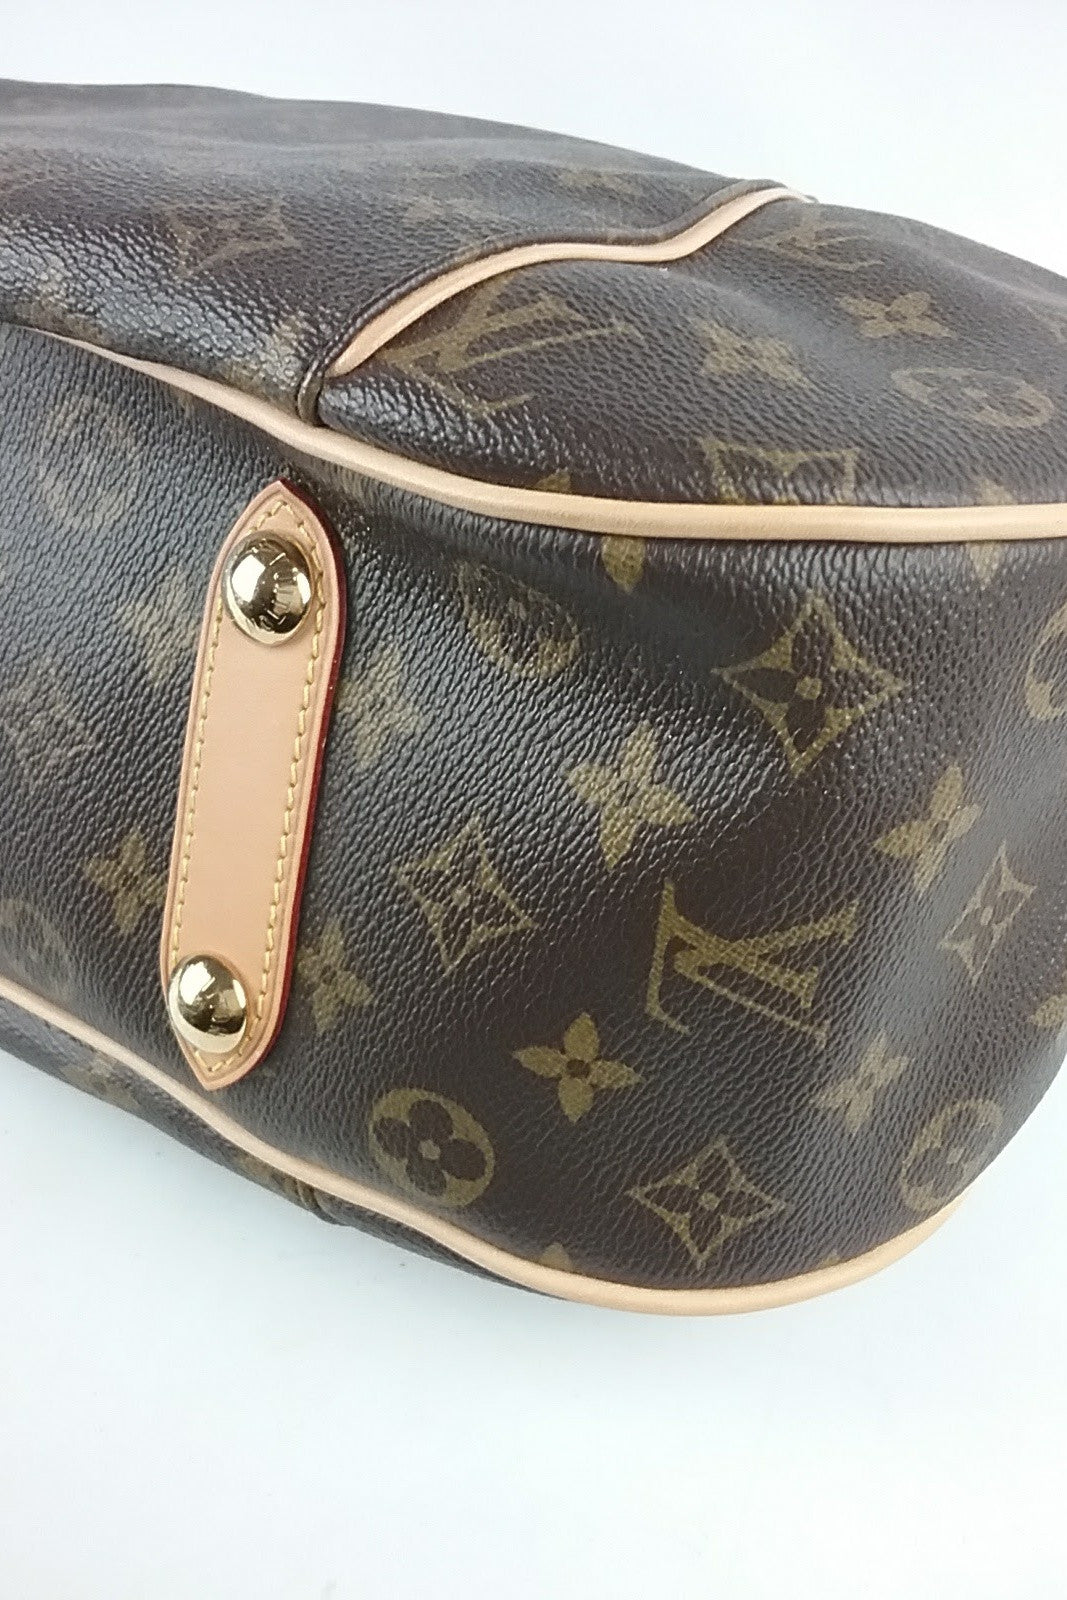 Monogram Galleria PM Shoulder Bag